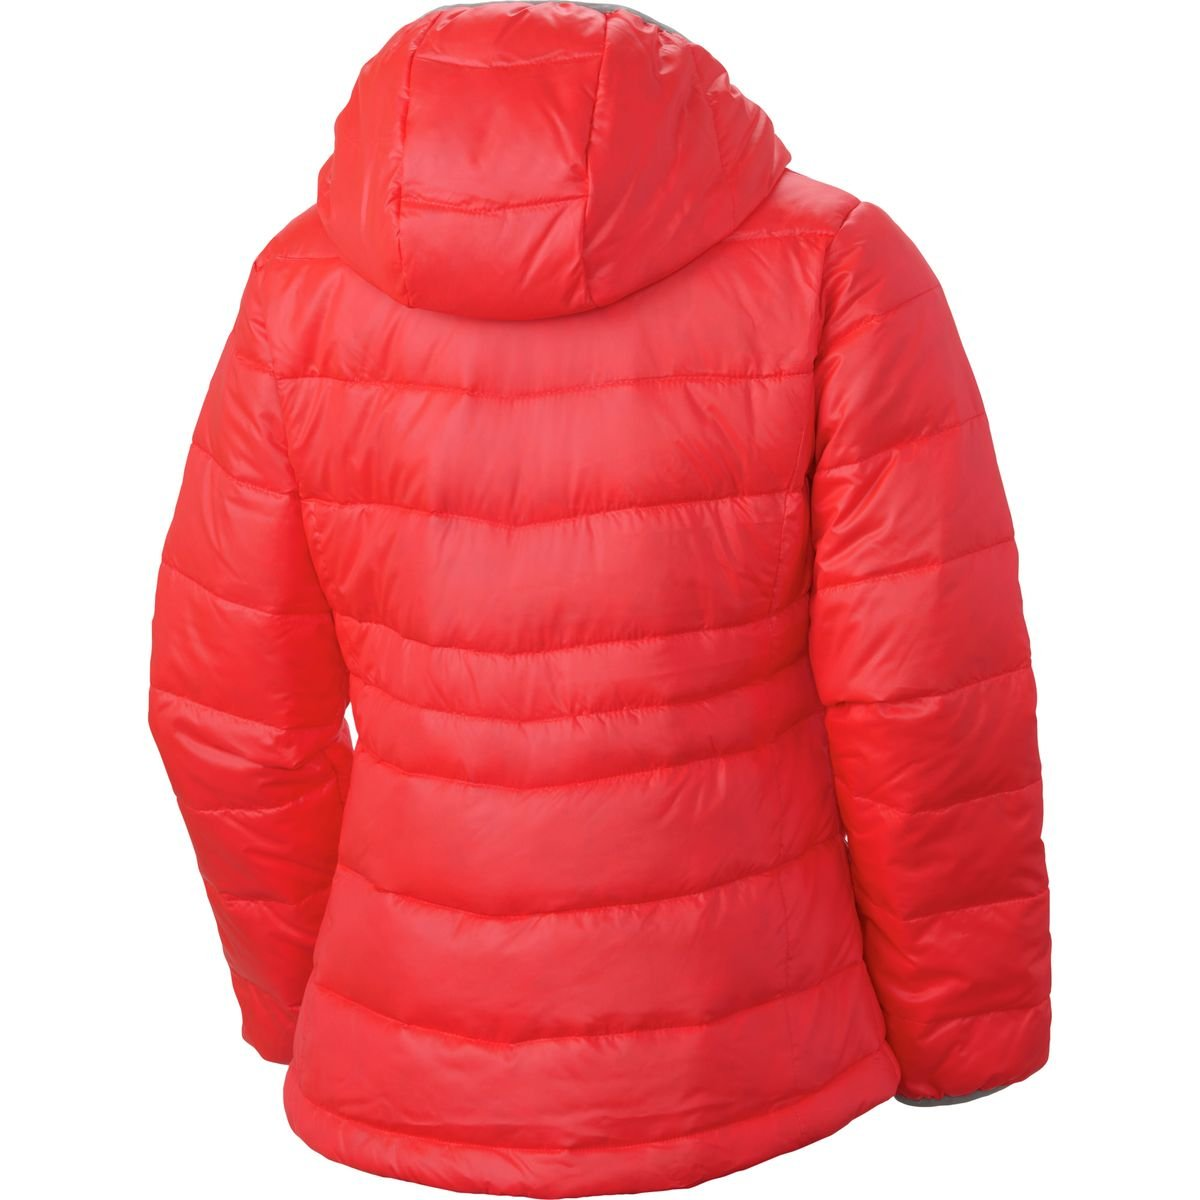 Columbia Womens Gold 550 TurboDown Hooded Down Jacket Laser Red//Earl Grey//White Pops 2XS 4-5 Columbia Kids Apparel 1624541-612 Little Big Kids